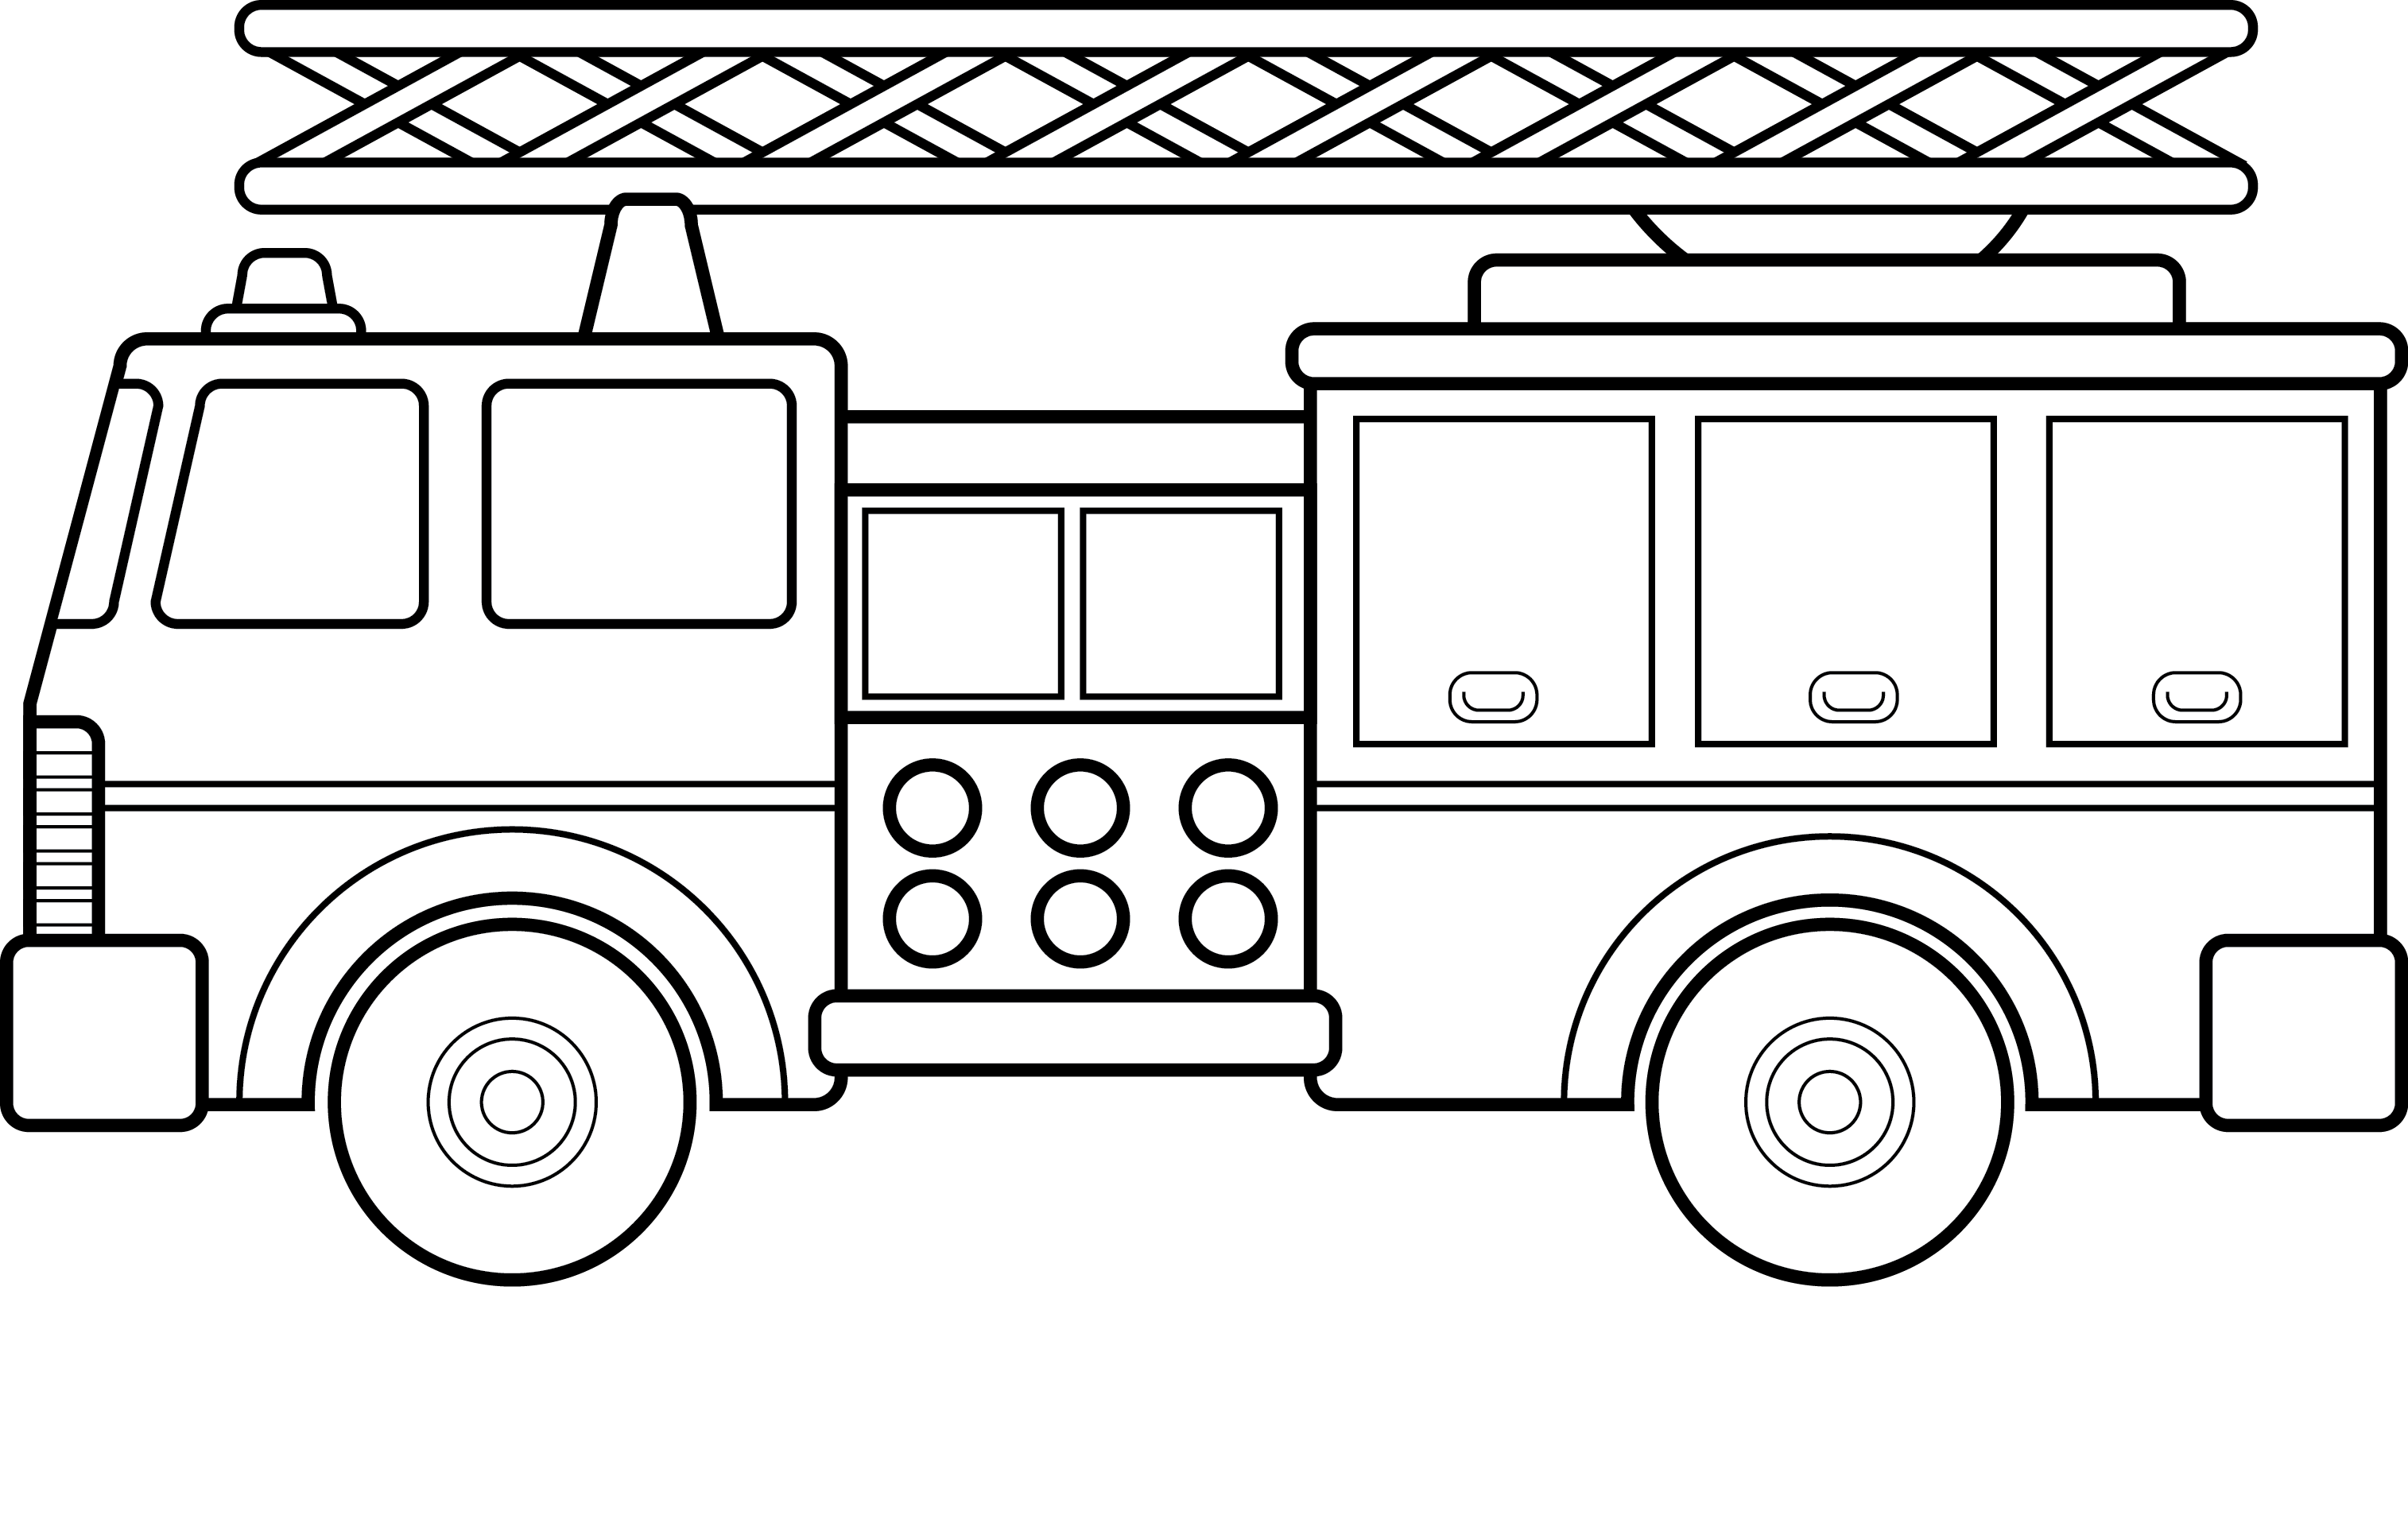 fire truck coloring pictures free printable fire truck with 2 person coloring pages for truck coloring fire pictures